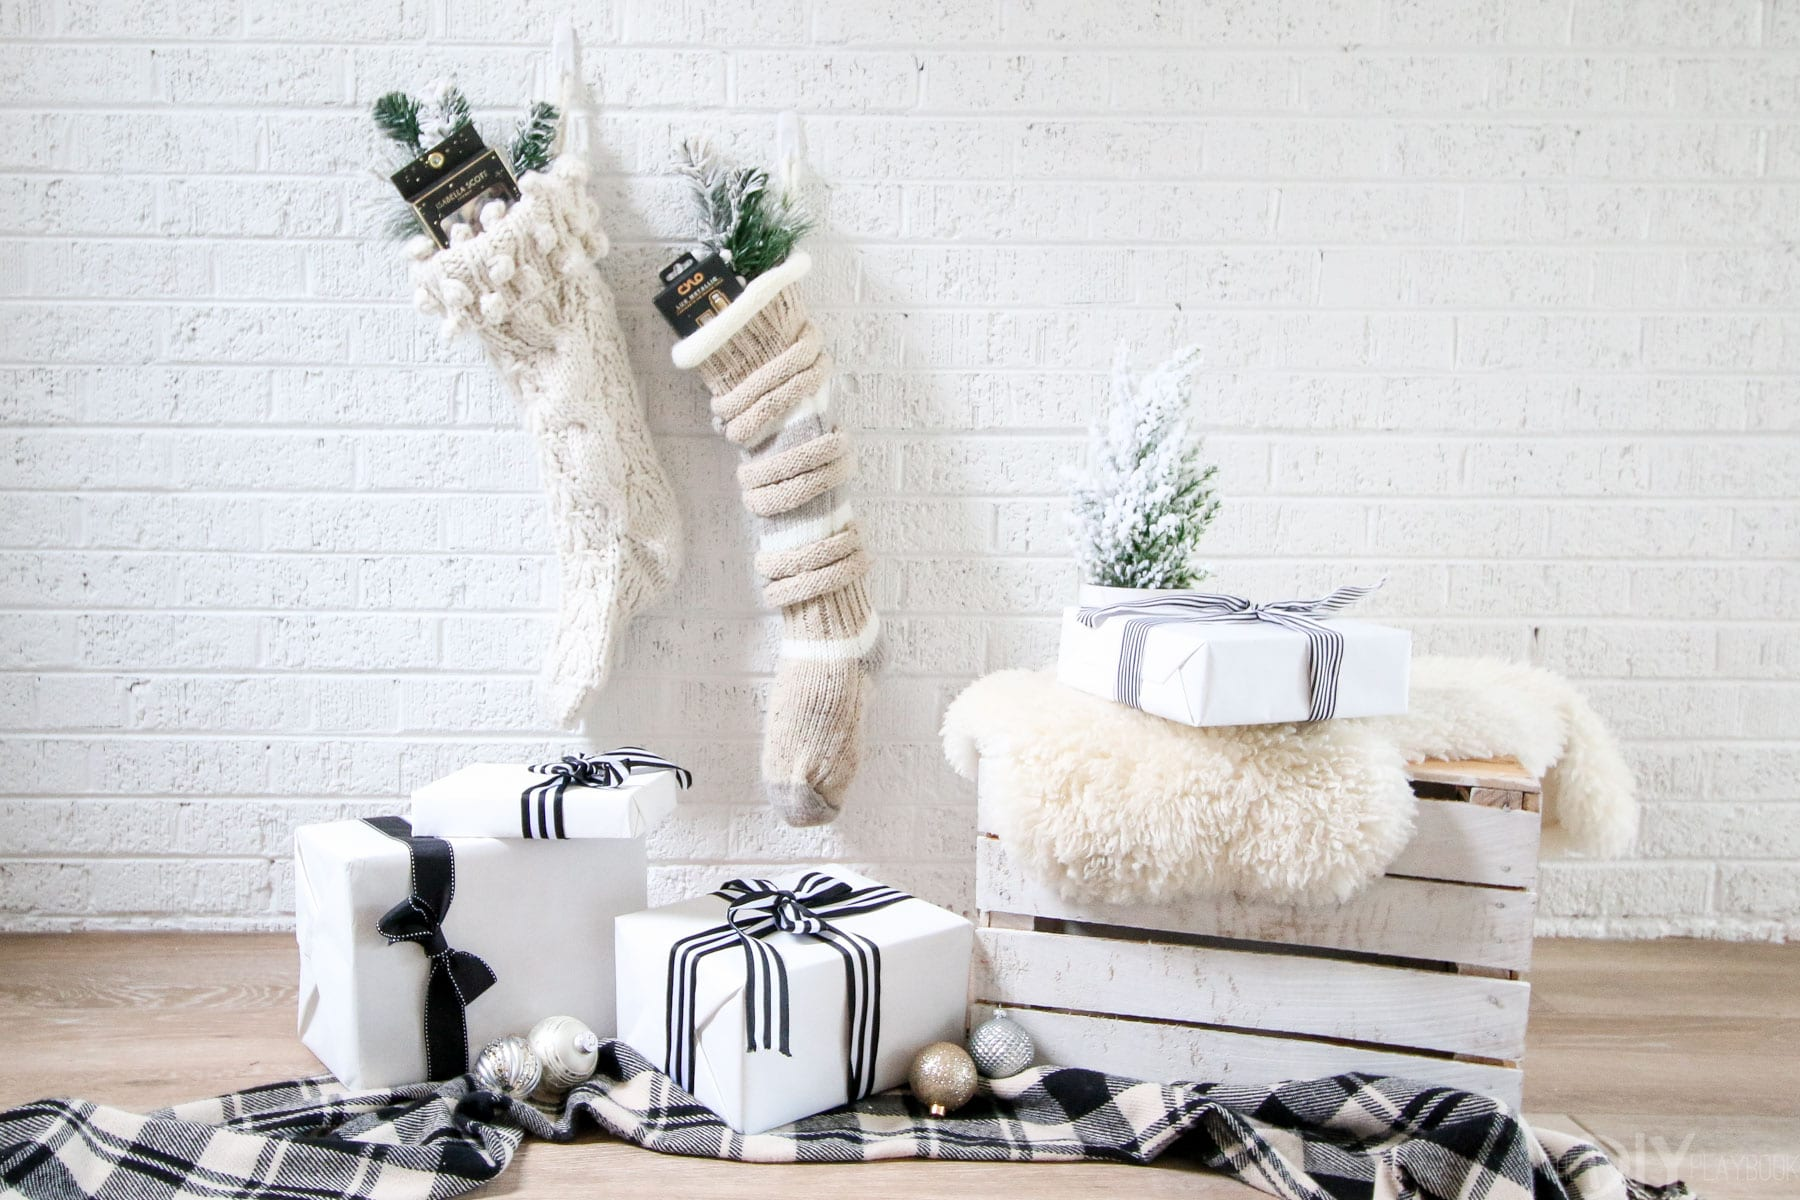 This christmas scene has all the essentials; stocking stuffers, presents, and a warm winter blanket.